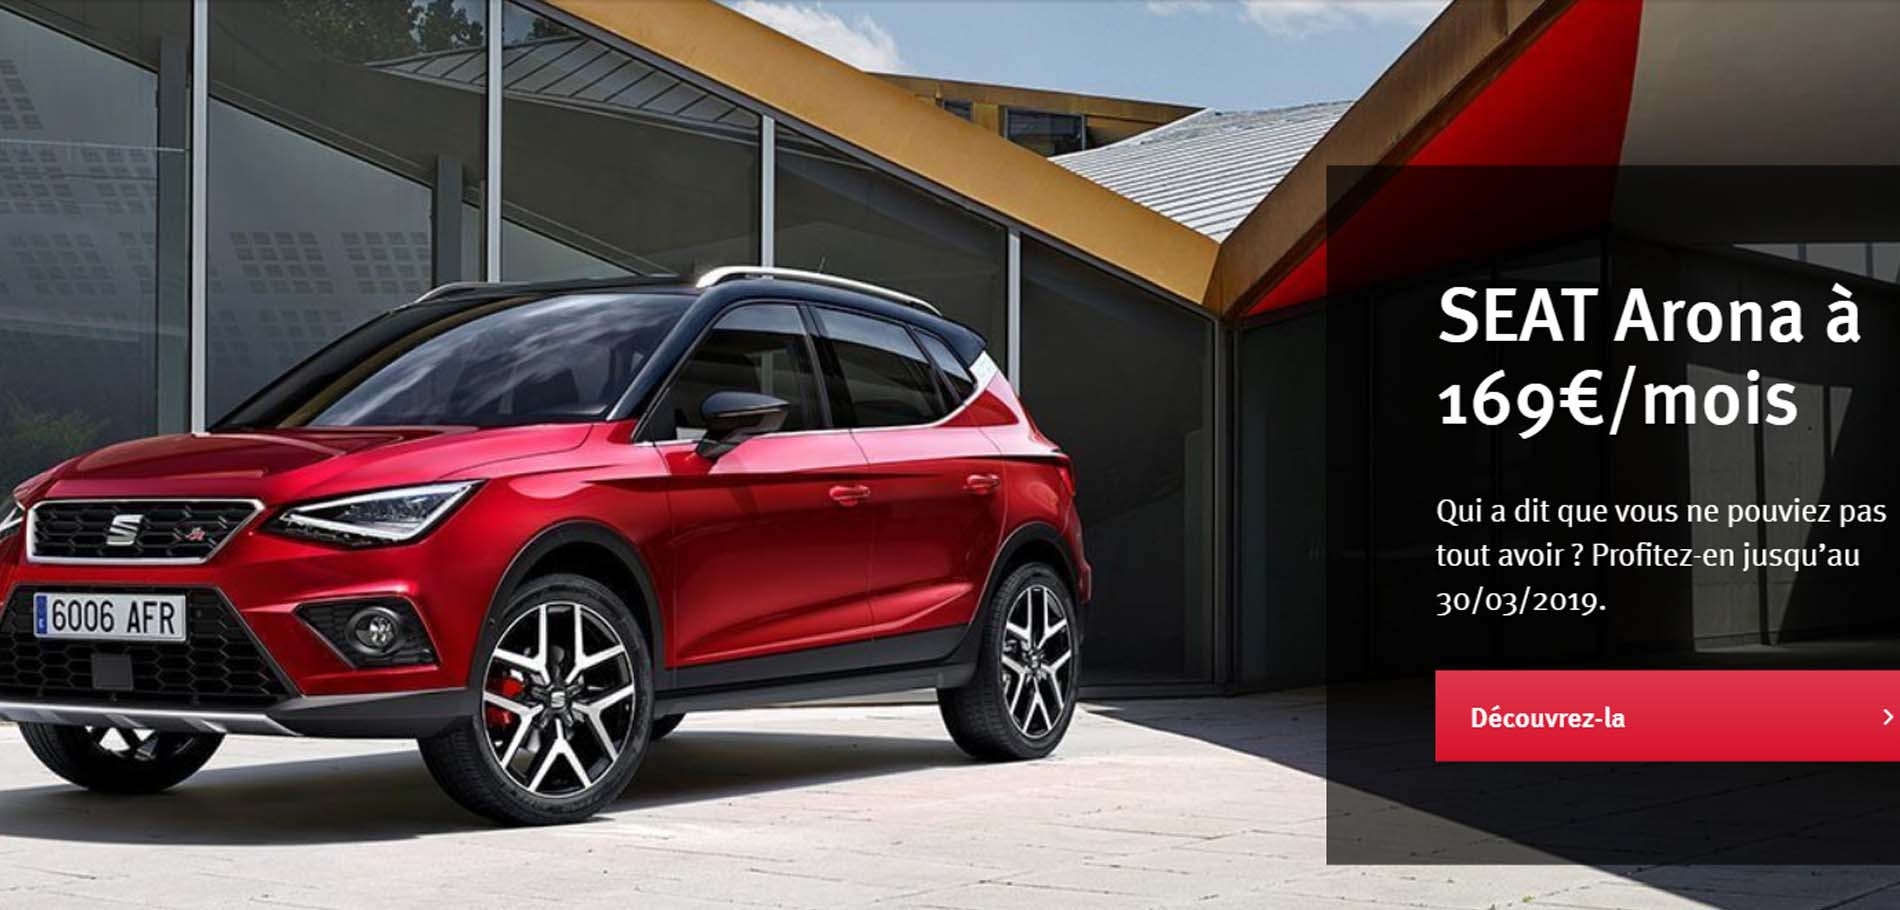 seat arona offre